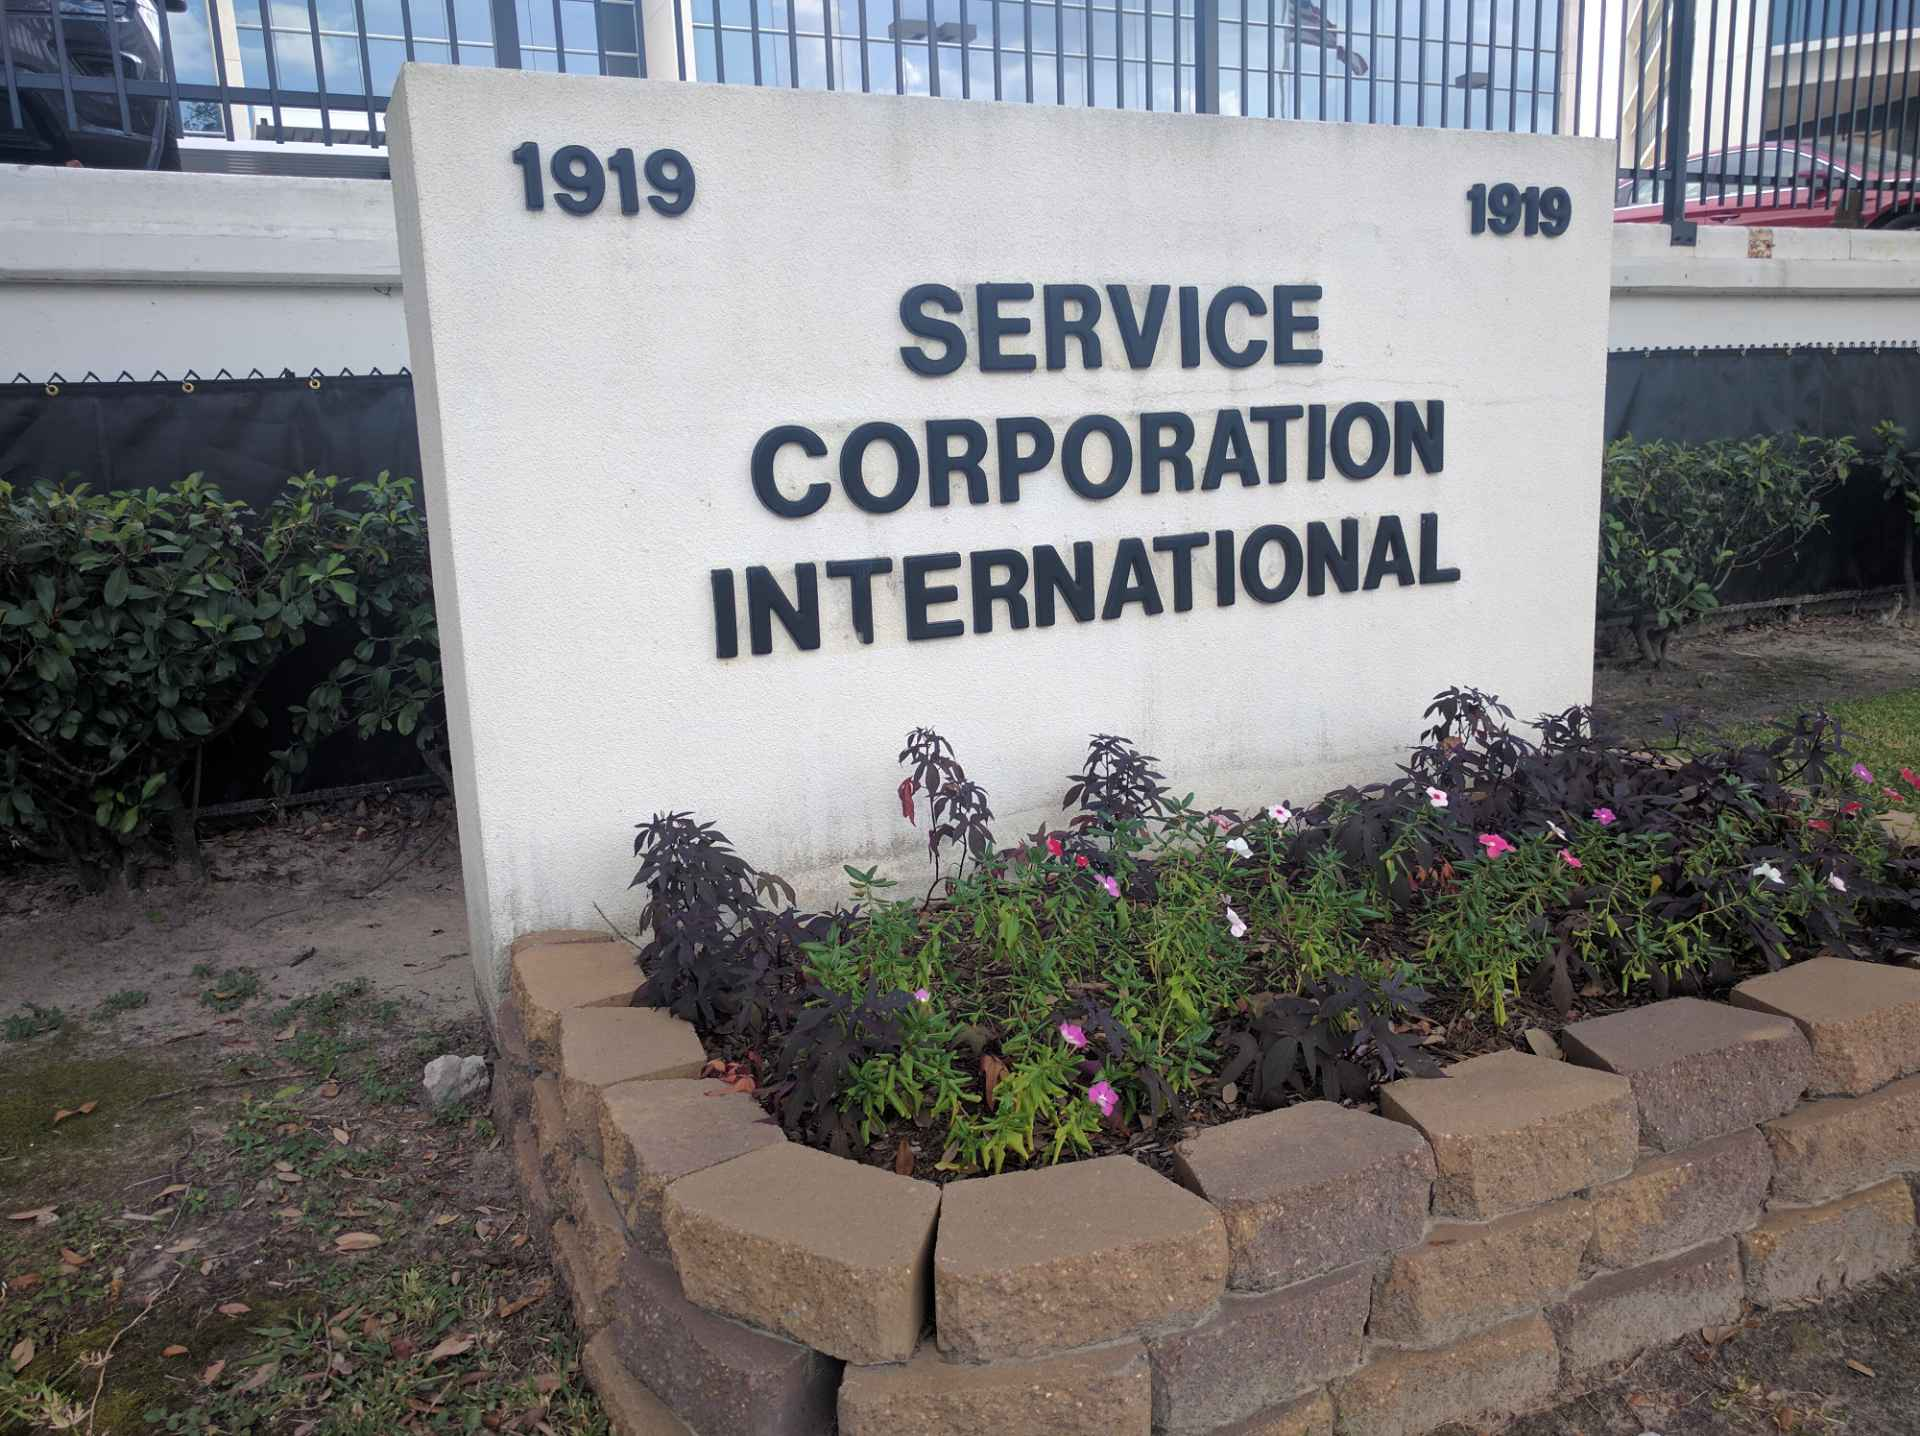 Entrance to Service Corporation International's corporate headquarters in Houston, Texas.